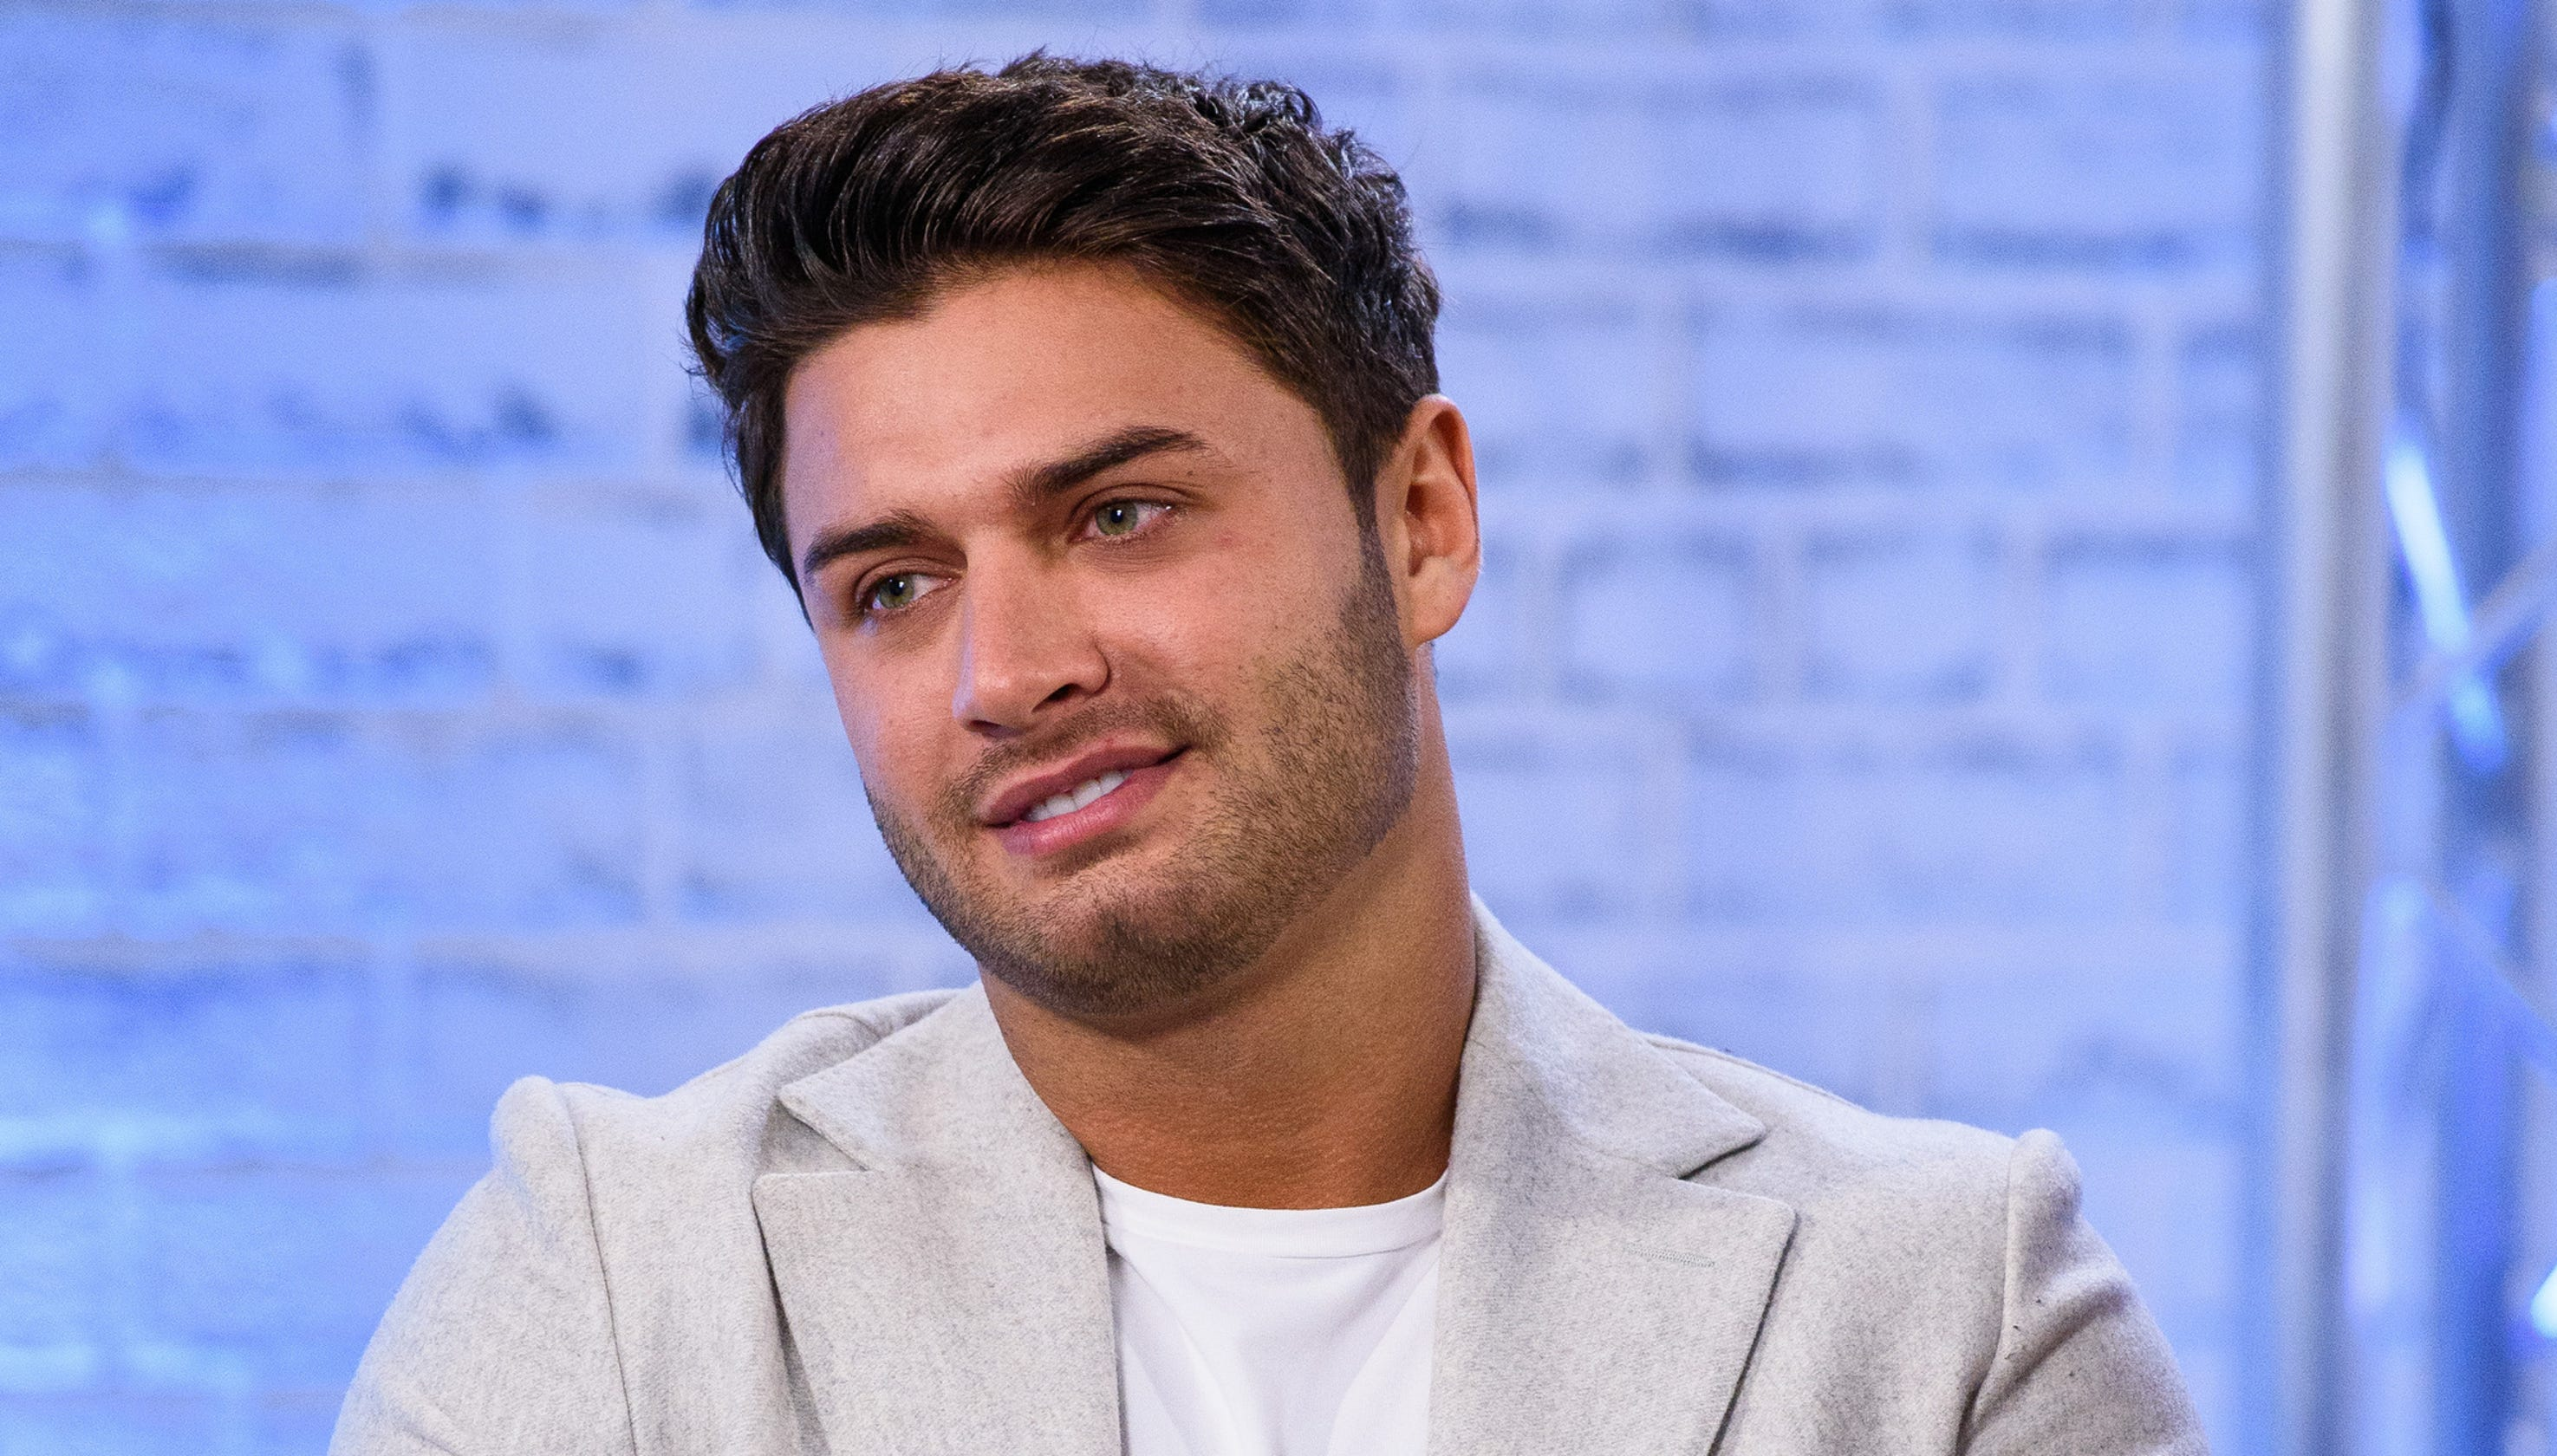 Love Island' reality star Mike Thalassitis dies at 26